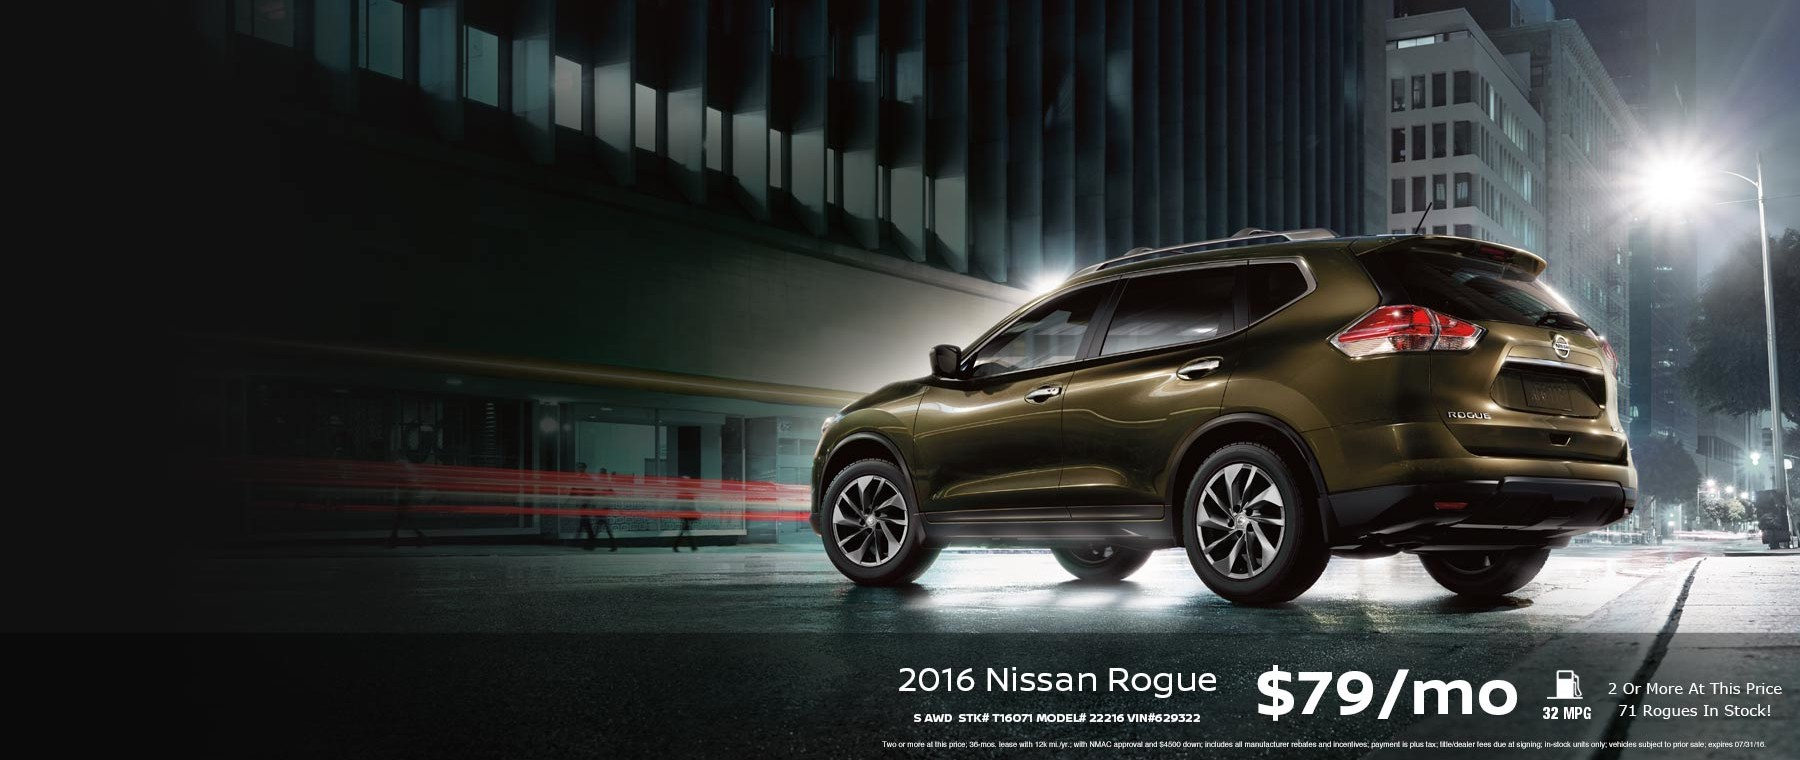 Andy Mohr Nissan Avon 2016 Rogue